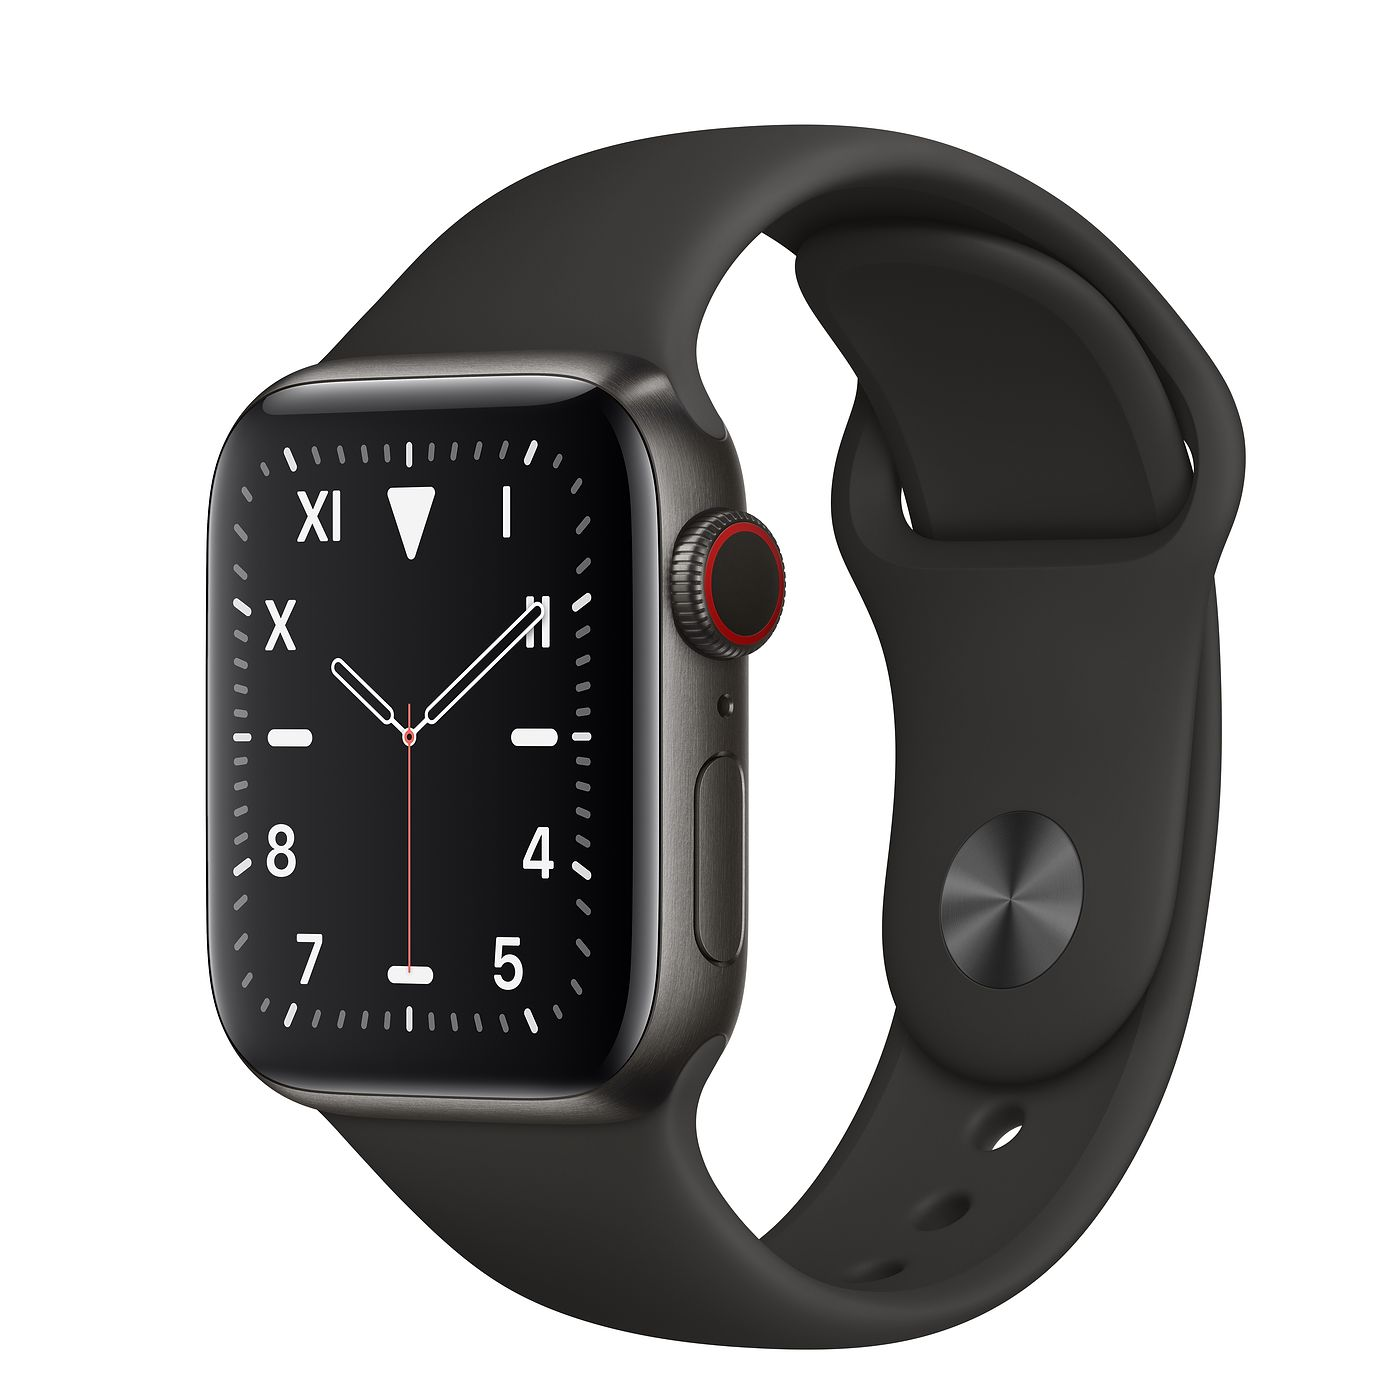 Apple Watch Edition 40mm Space Black Titanium with Sport Band, qua sử dụng